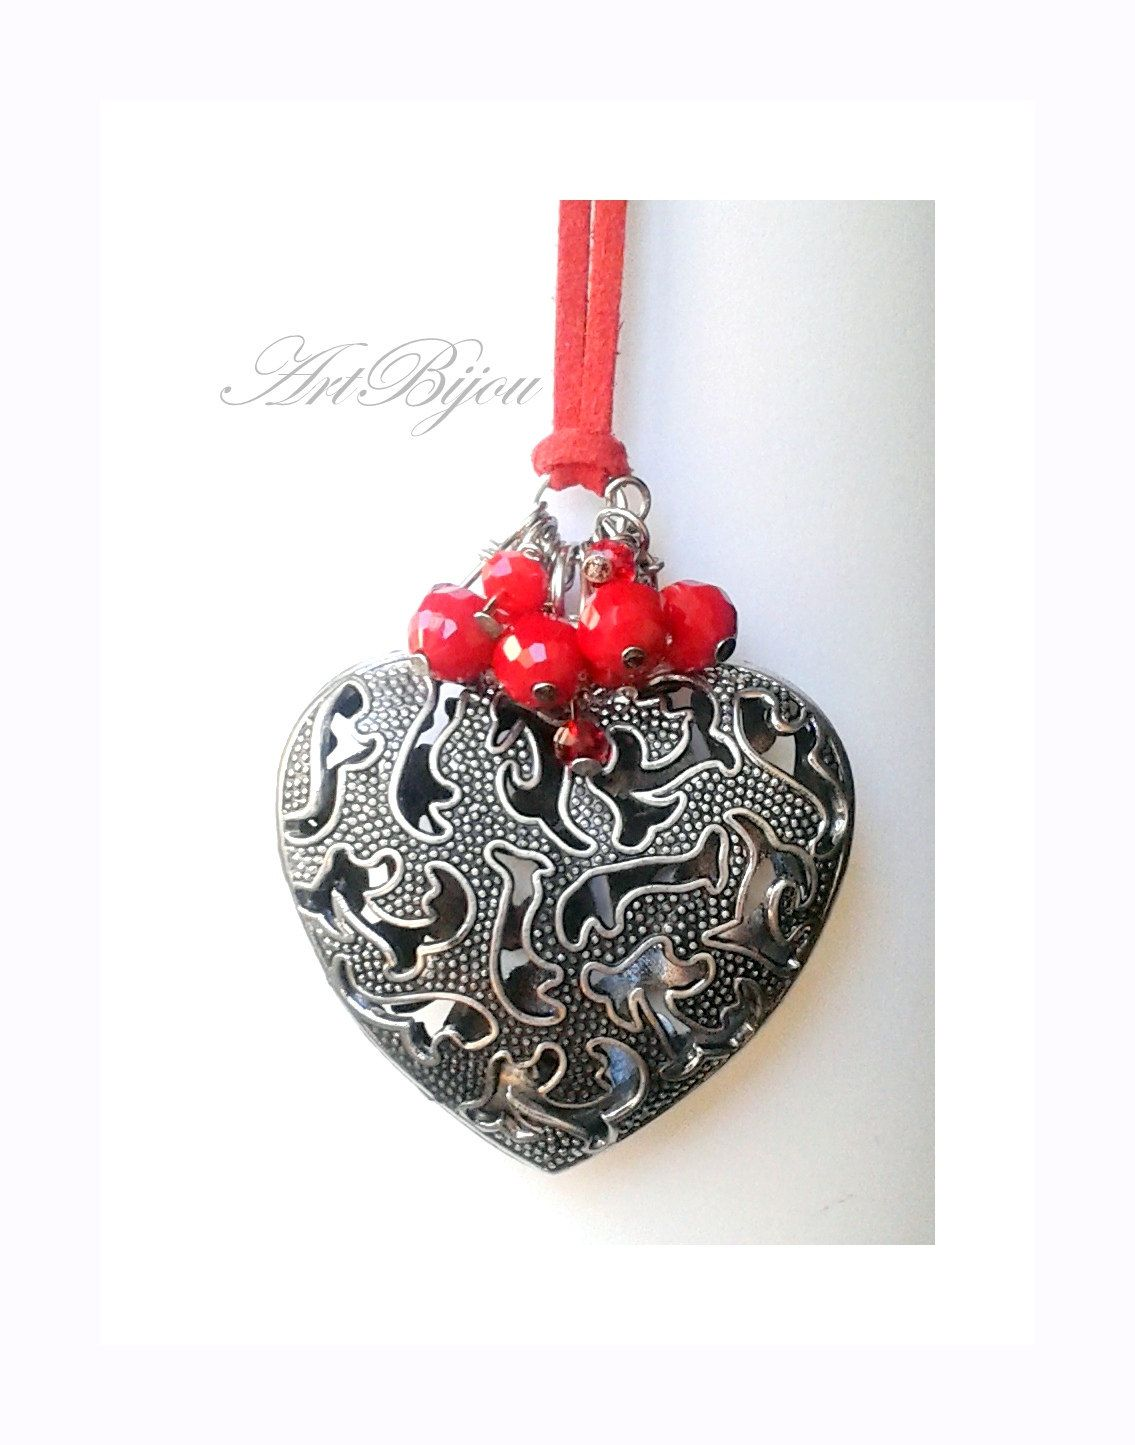 Heart pendant heart necklace red necklace bell heart long heart pendant heart necklace red necklace bell heart long necklace modern aloadofball Gallery